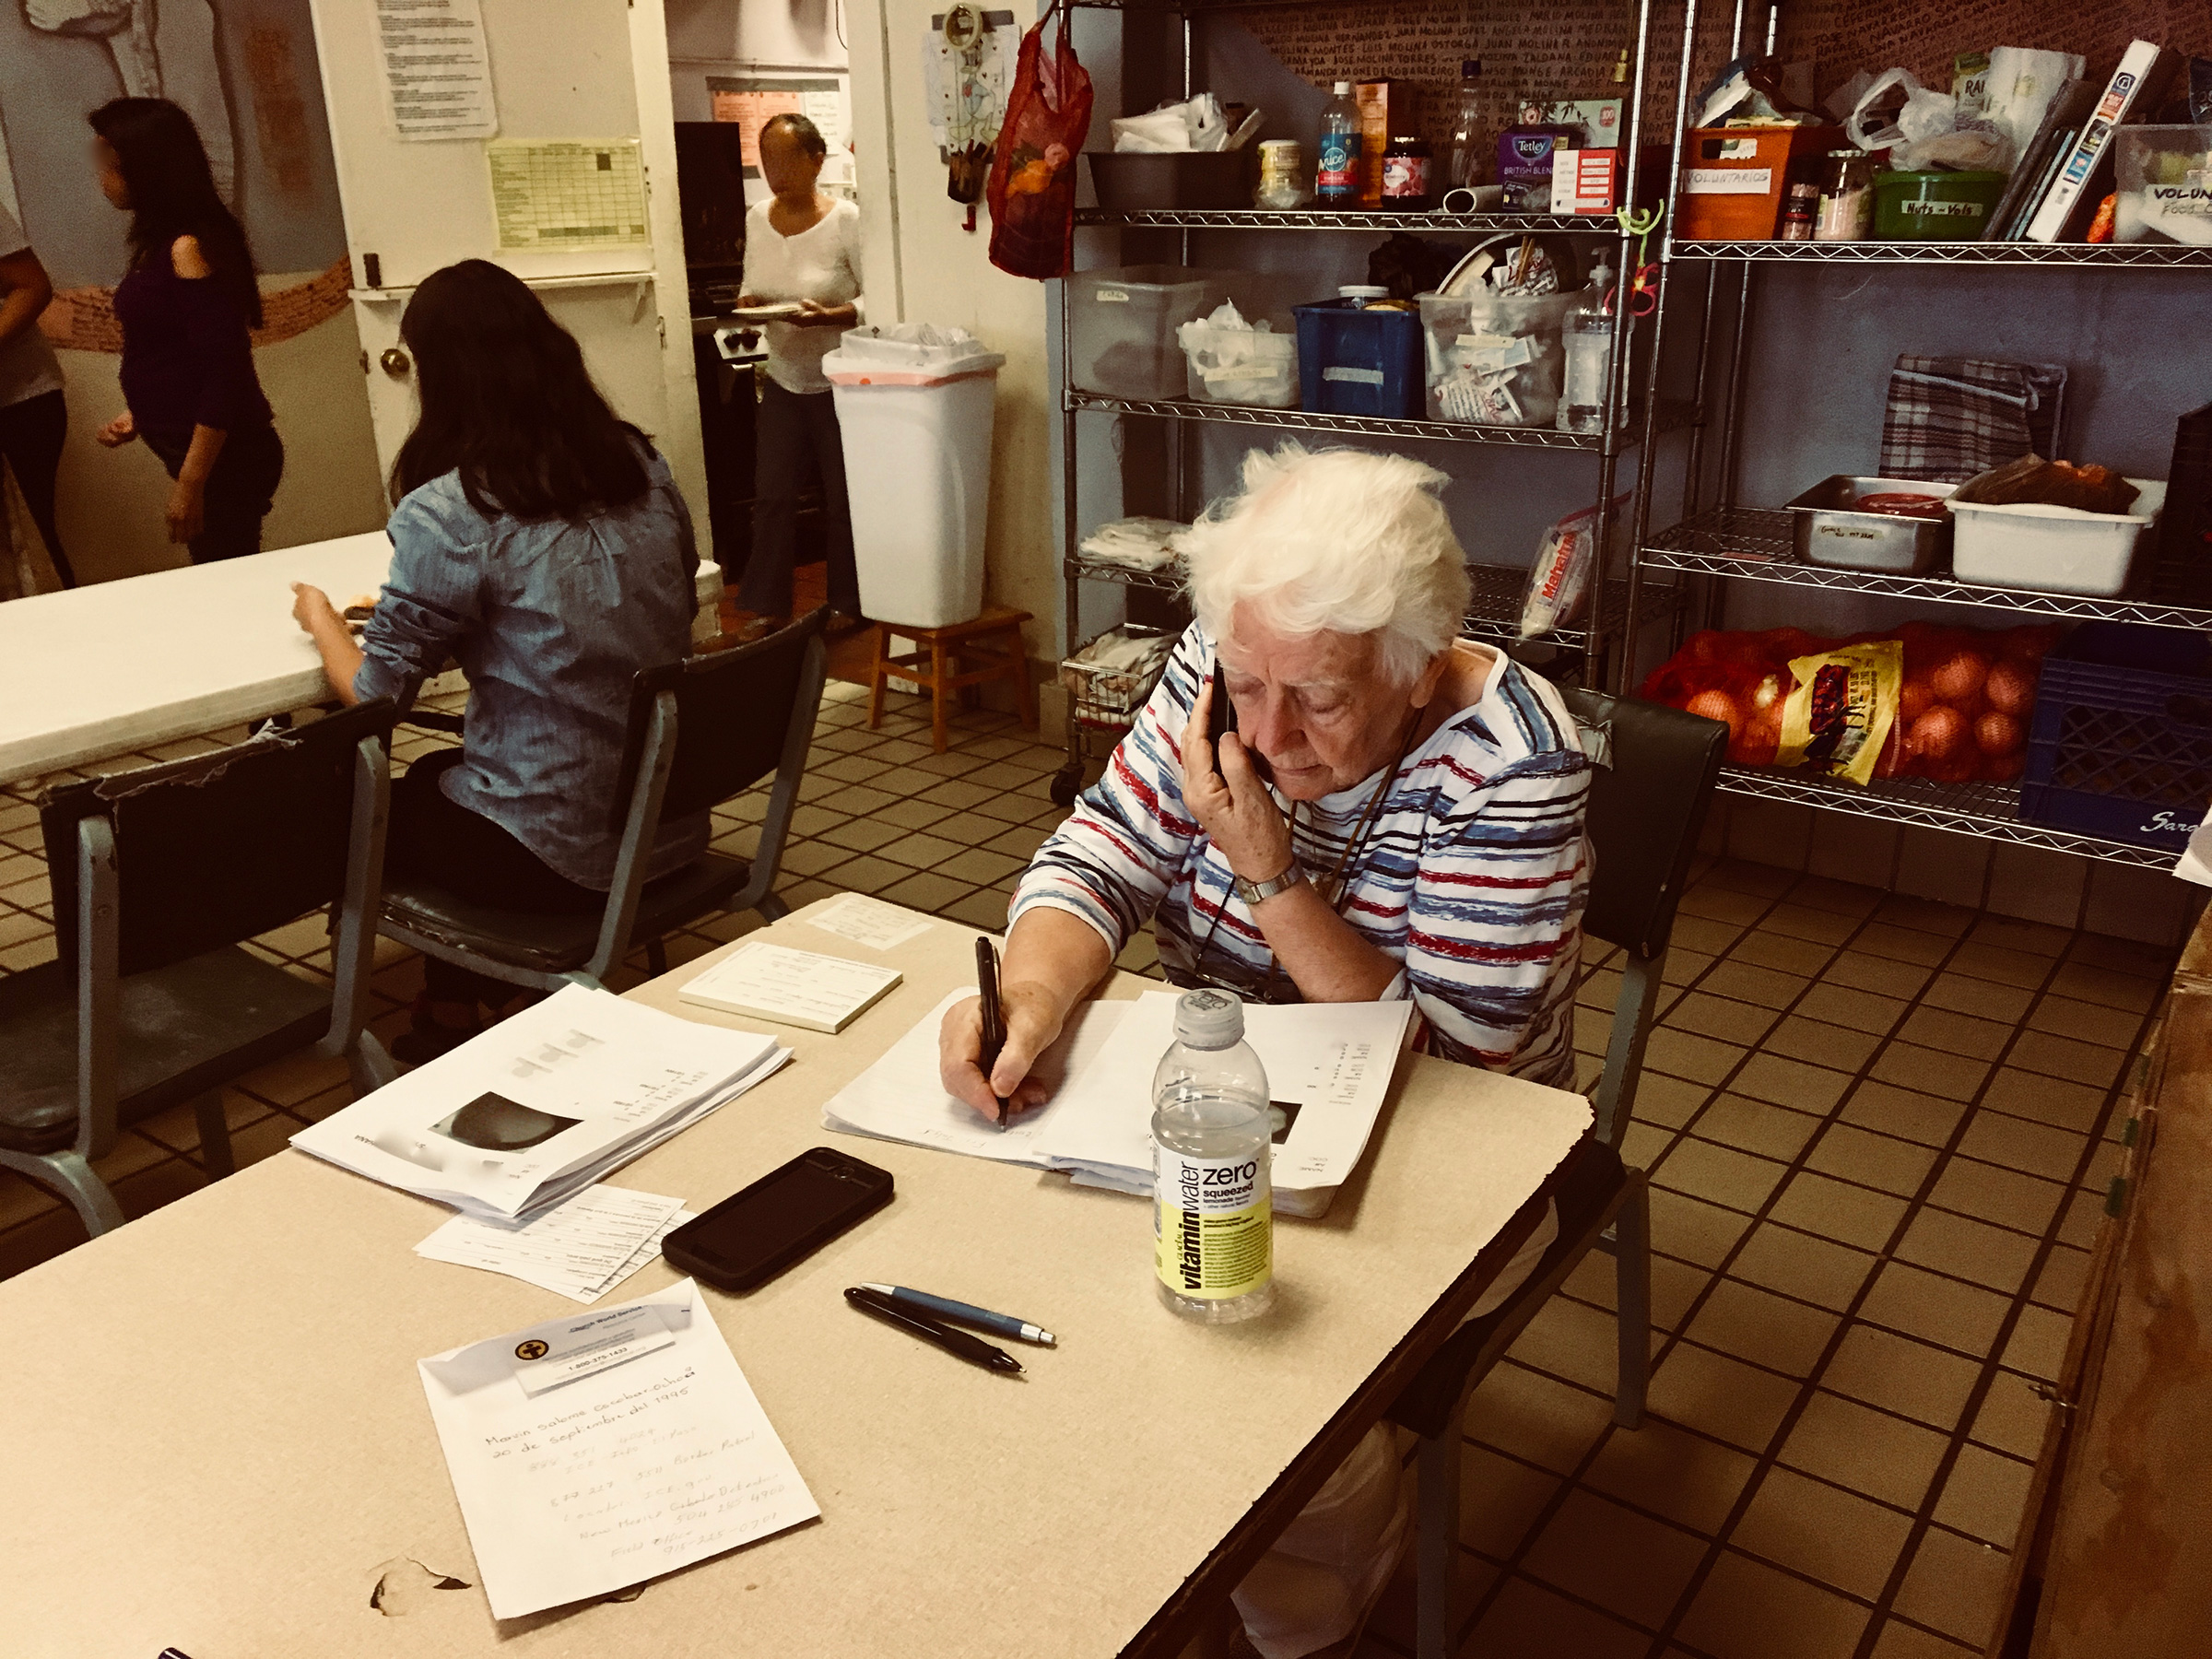 Sister Caroline Sweeney, a volunteer, makes calls to the families of recent arrivals in Casa Vides in El Paso, Texas in August 2019.